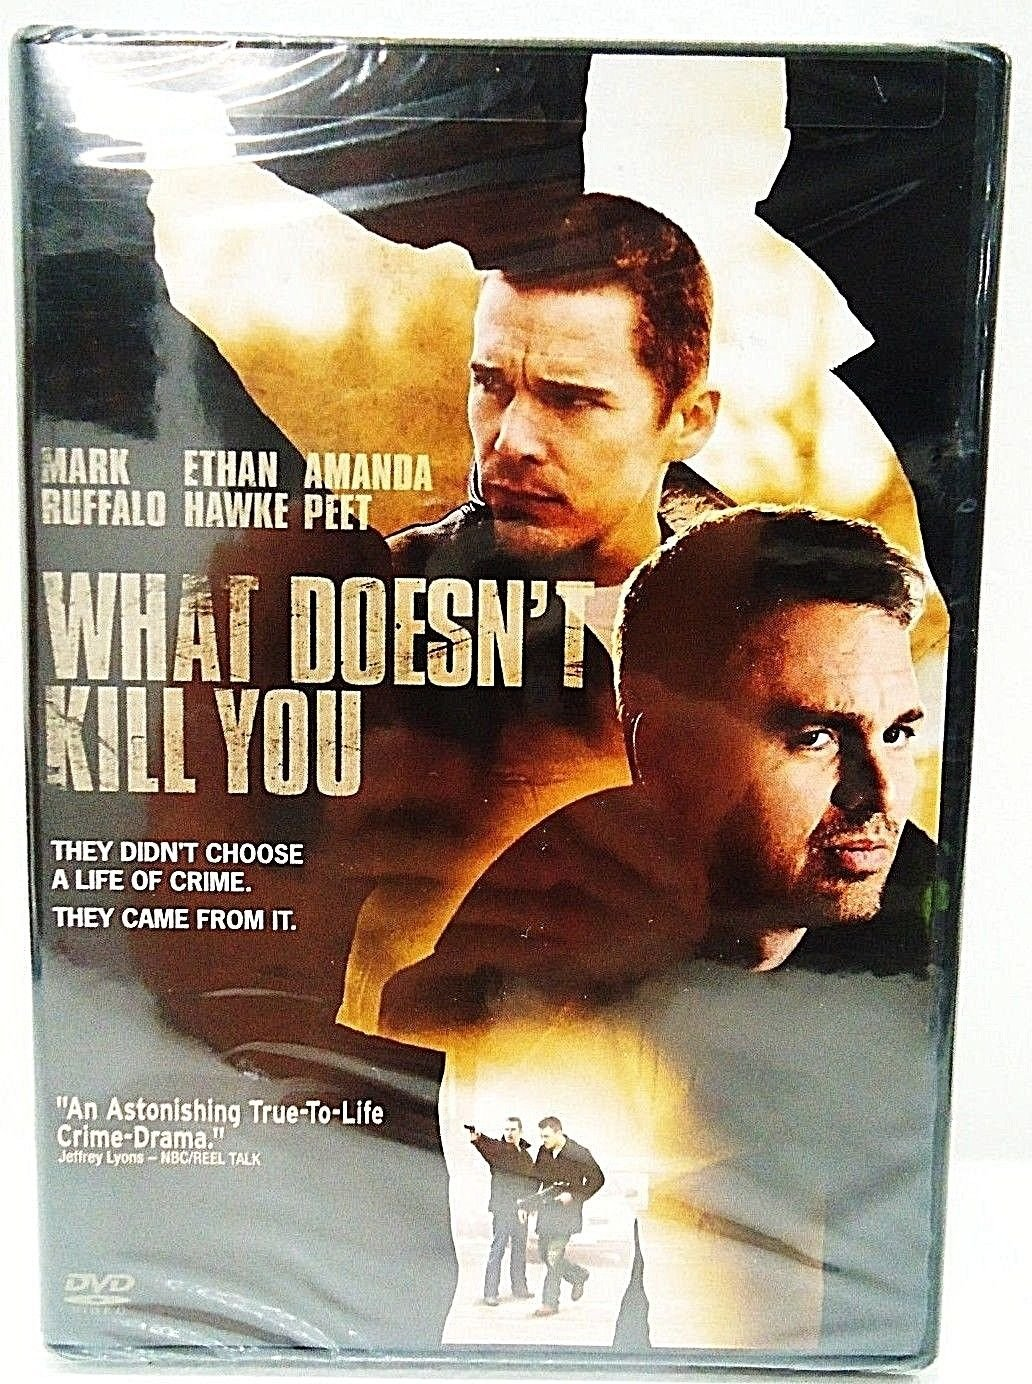 WHAT DOESN'T KILL YOU - DVD - MARK RUFFALO - ETHAN HAWKE - NEW - CRIME - MOVIE